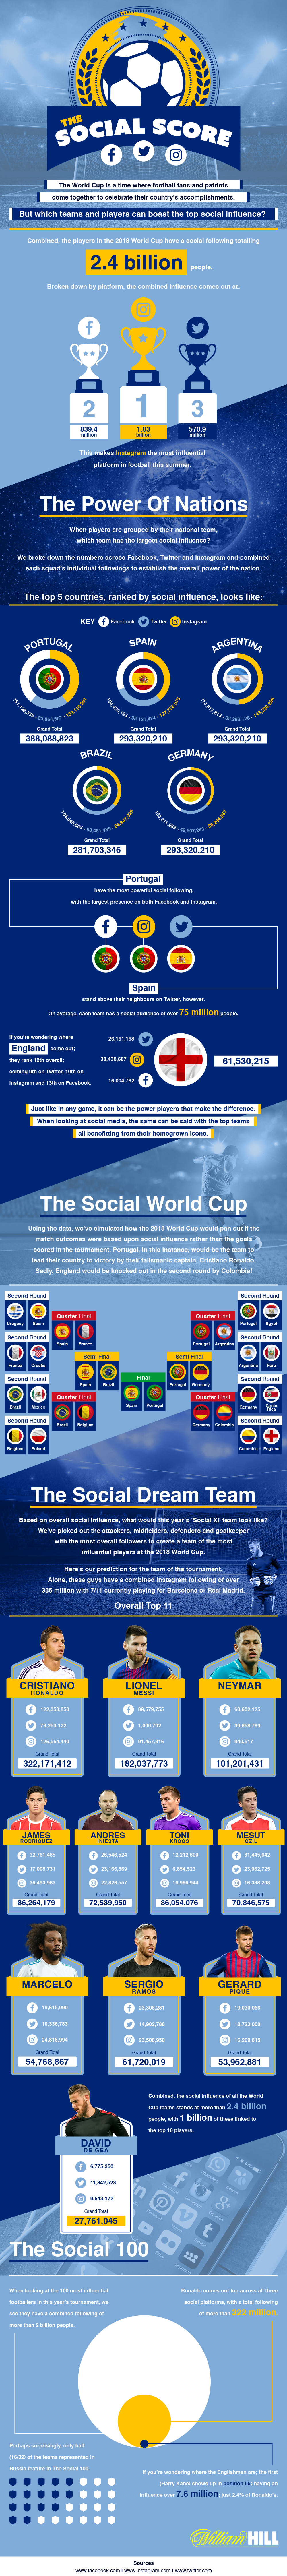 Infographic looking at the most influential team and players on social media for the 2018 World Cup